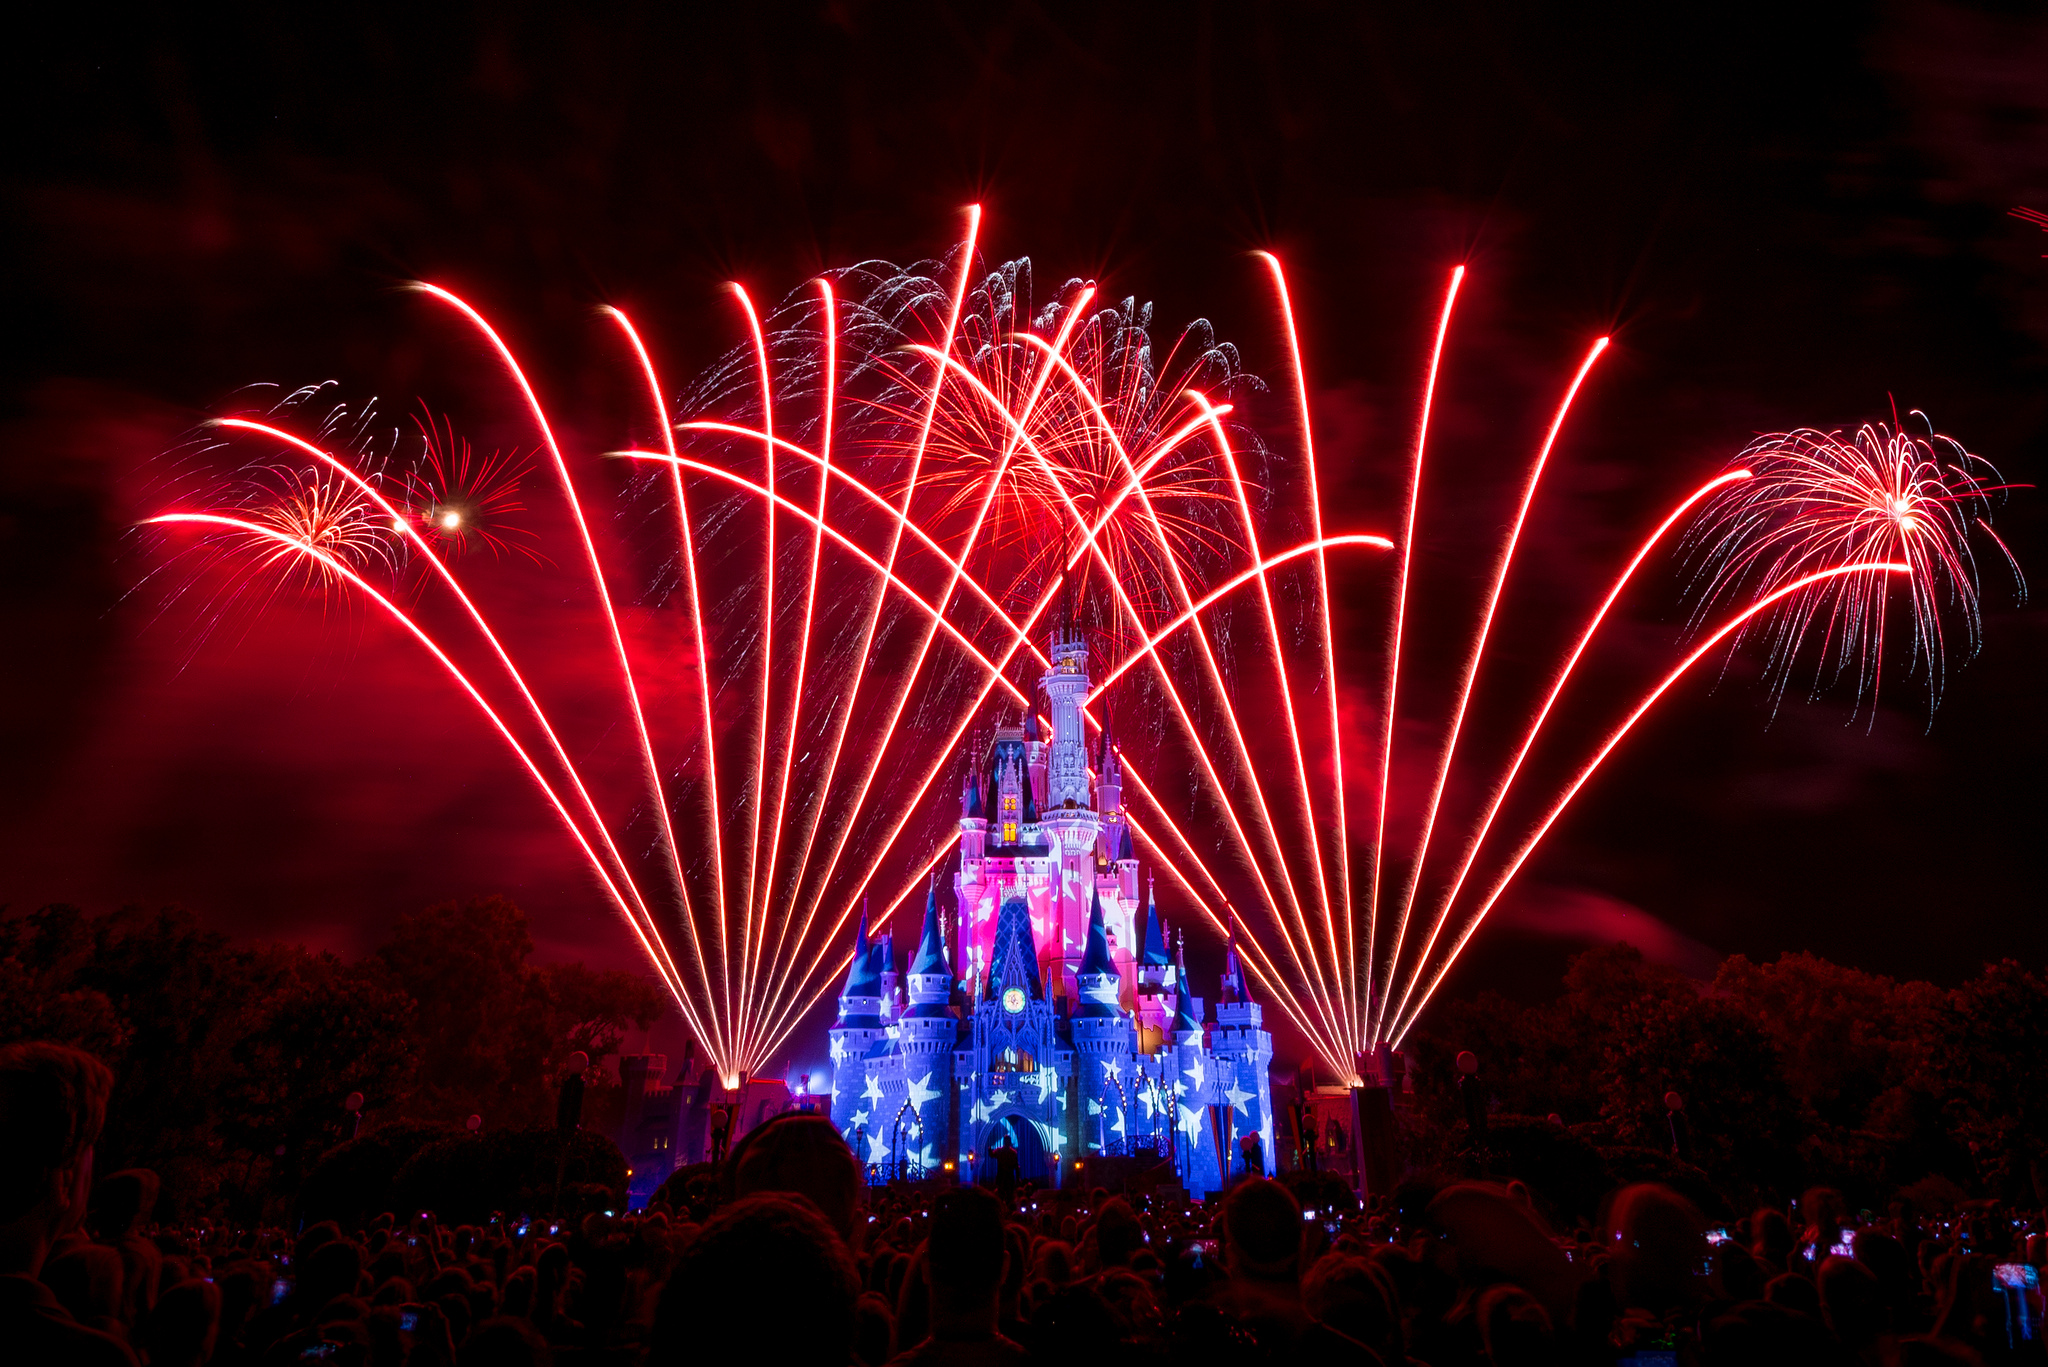 Epic Fireworks Shows In Florida That Will Blow You Away